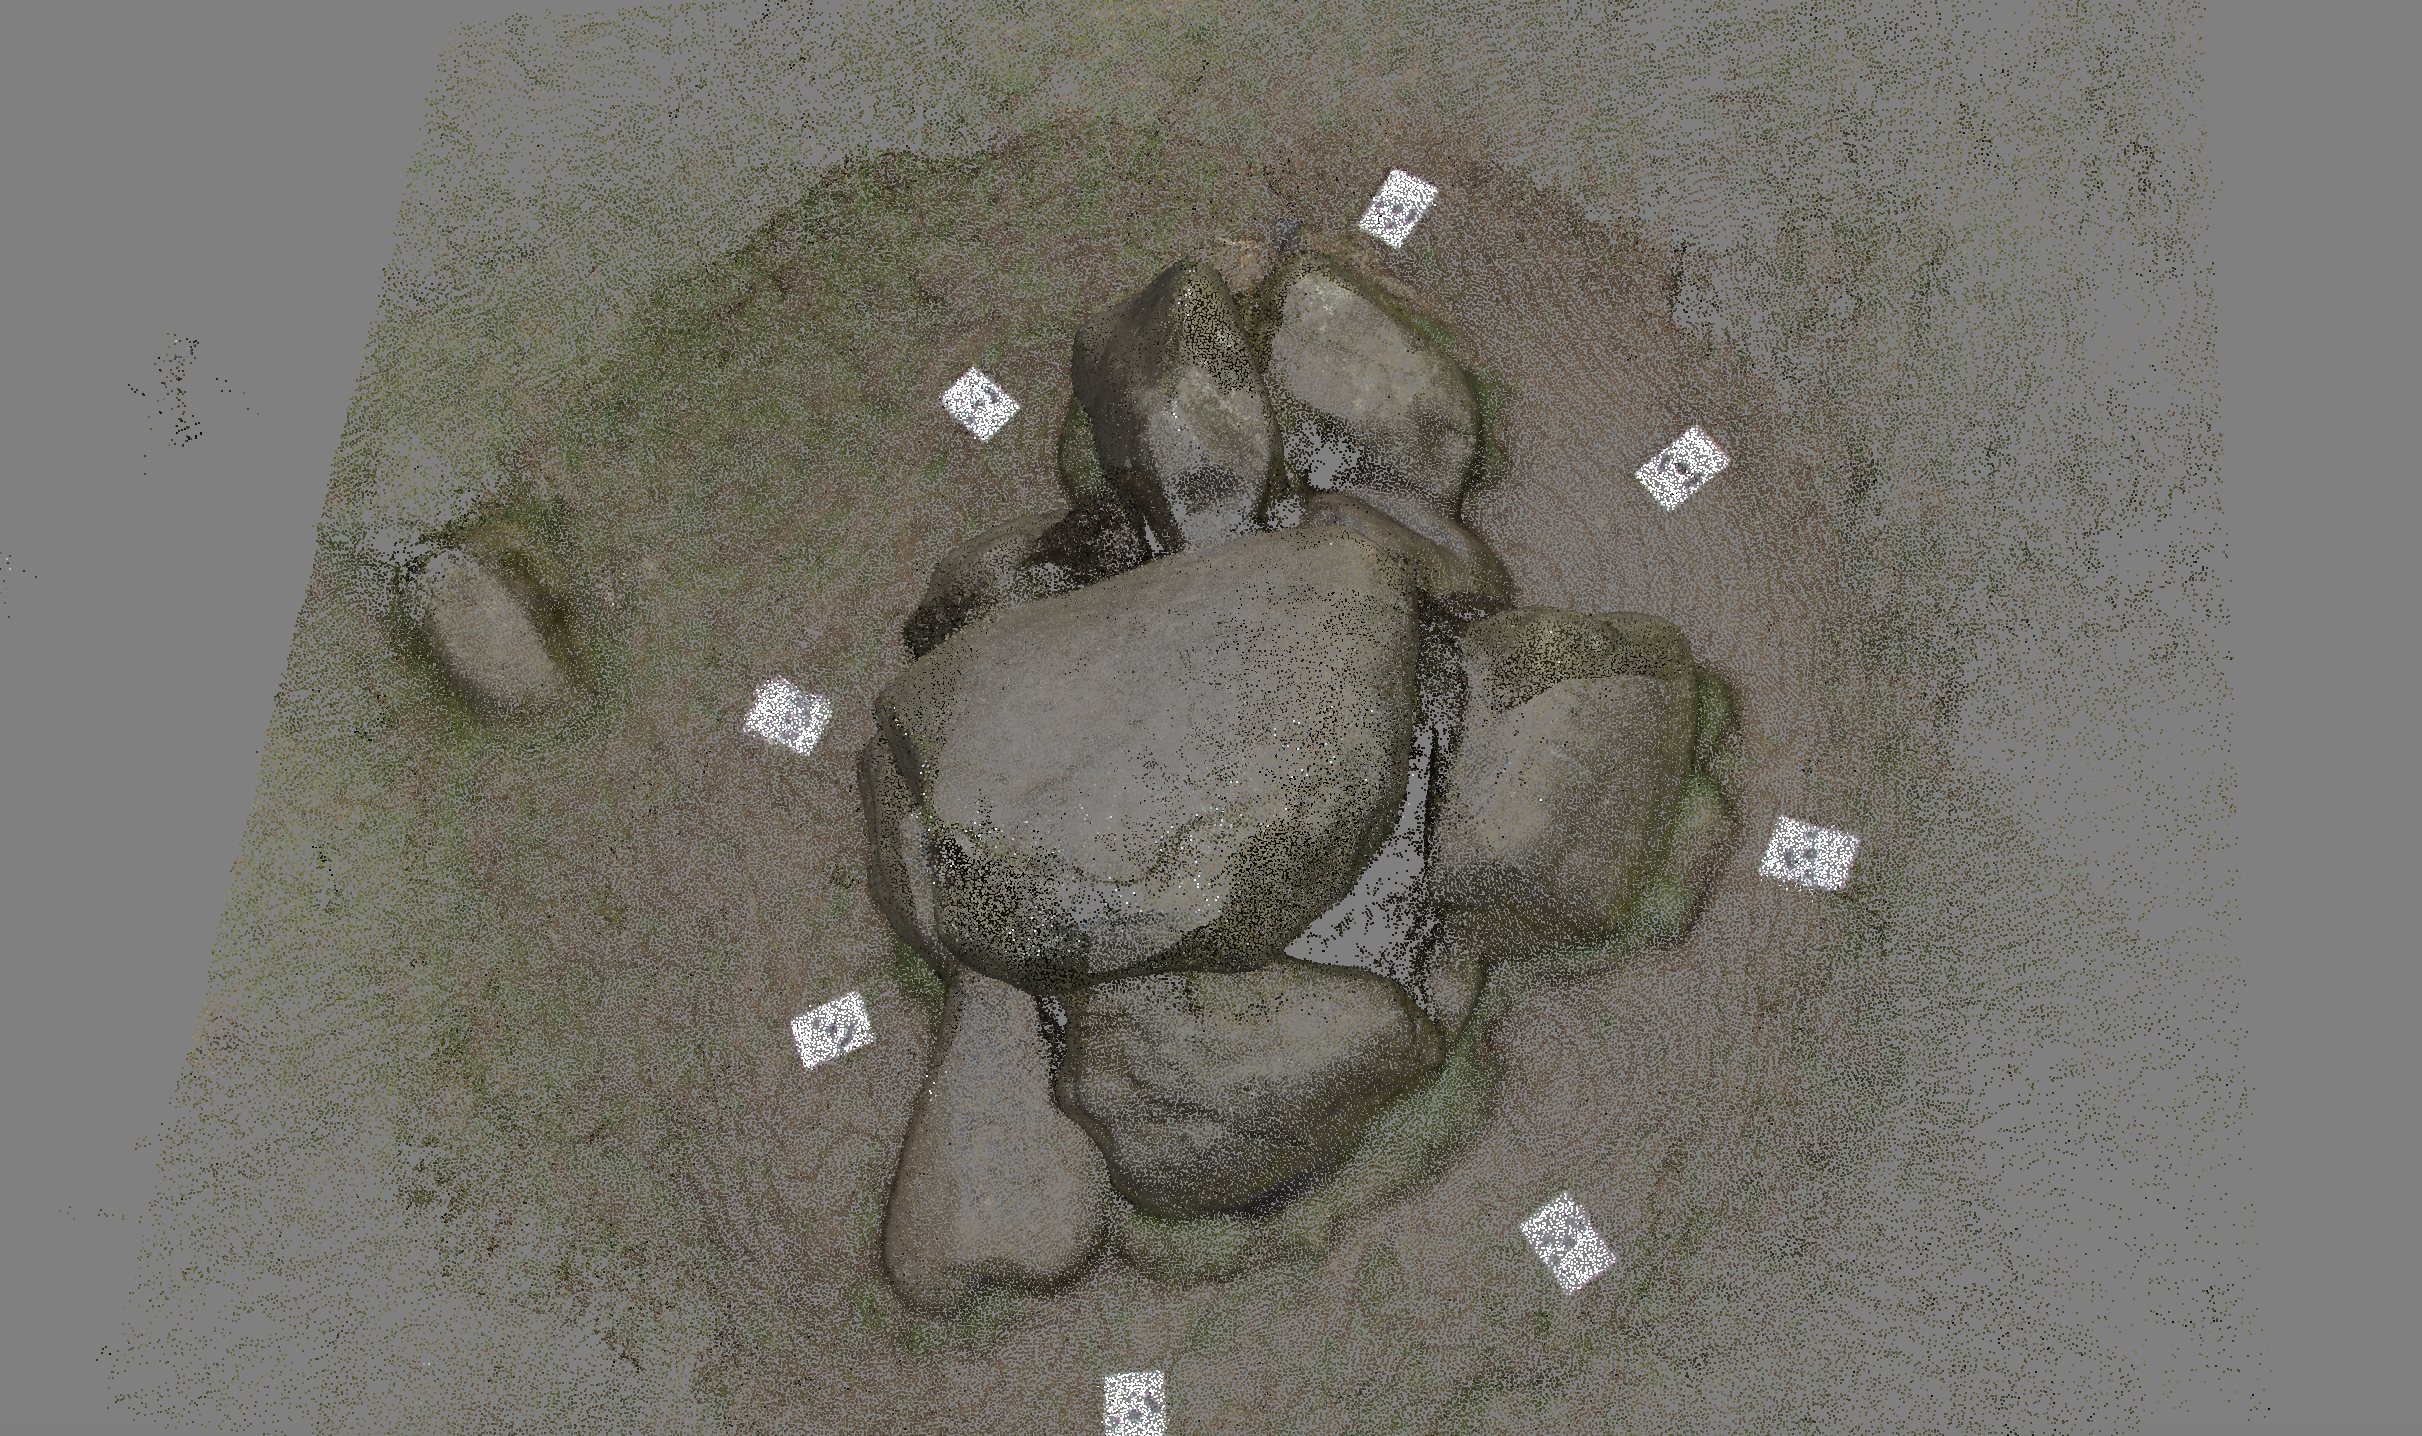 Point of view II , 3D model of neolithic henge 'The Giant's Ring' created by photogrammetric surveying